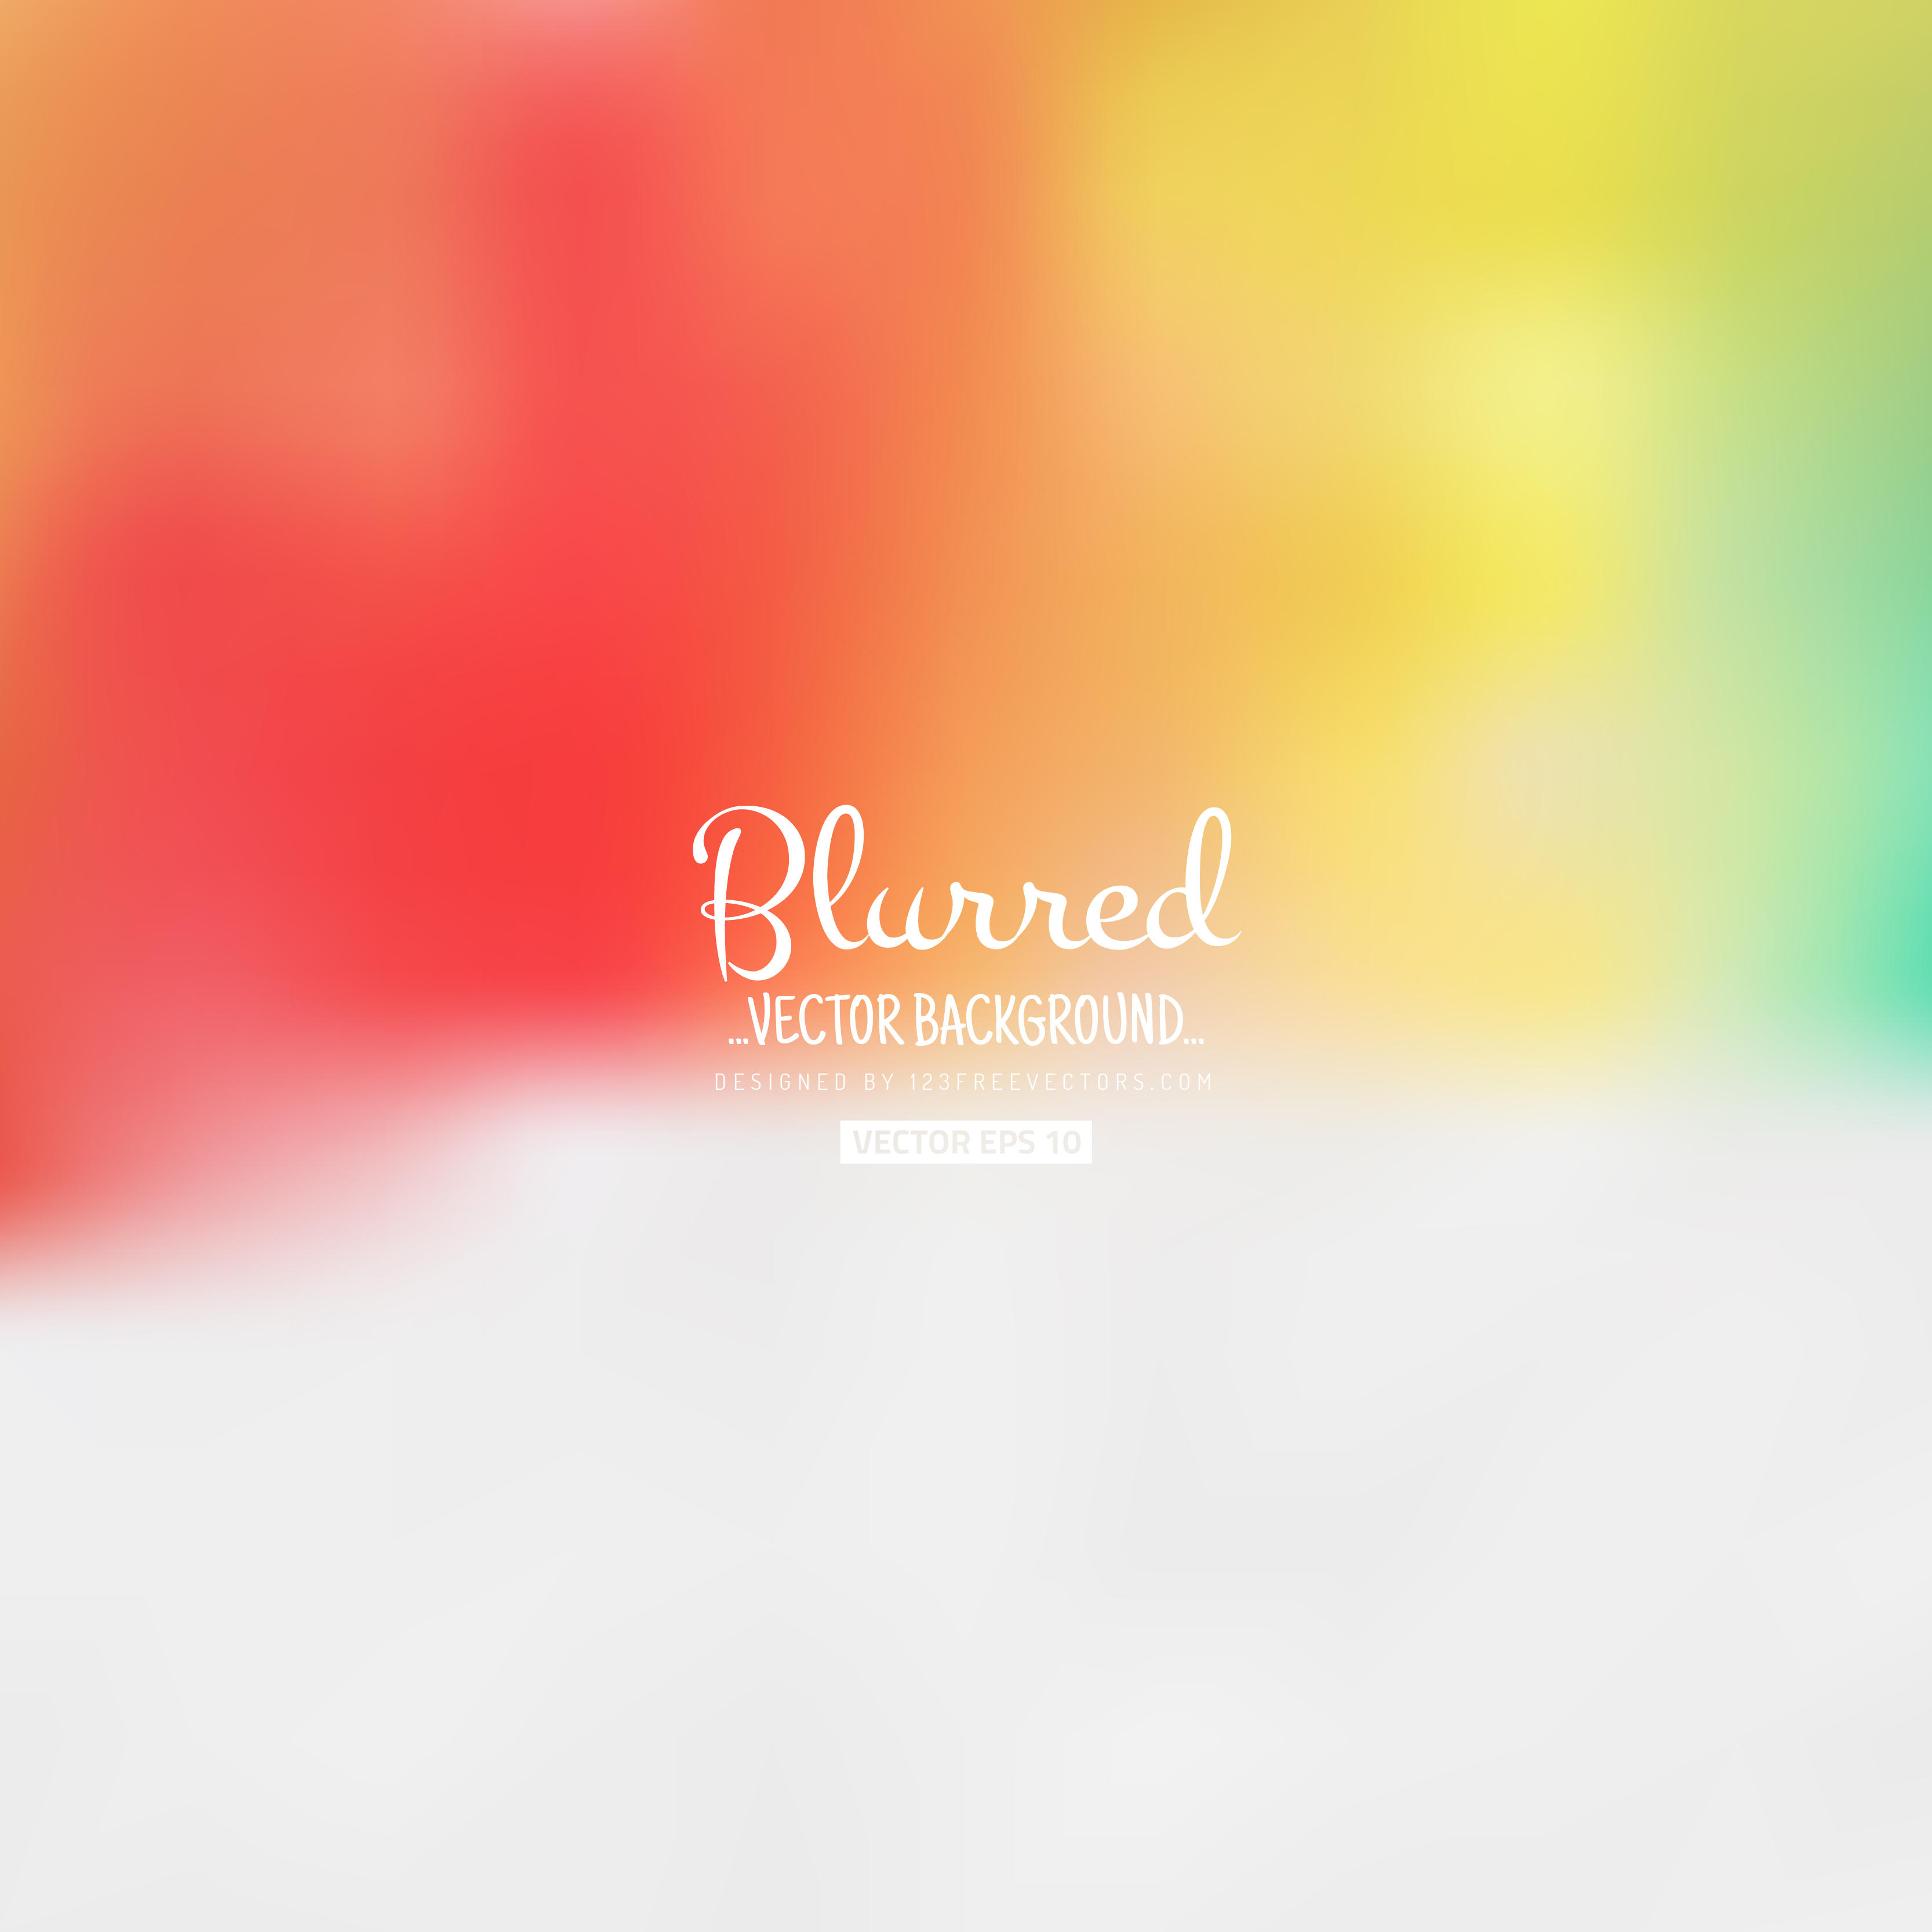 3333x3333 Blurred Light Color Background Vector Free 123freevectors